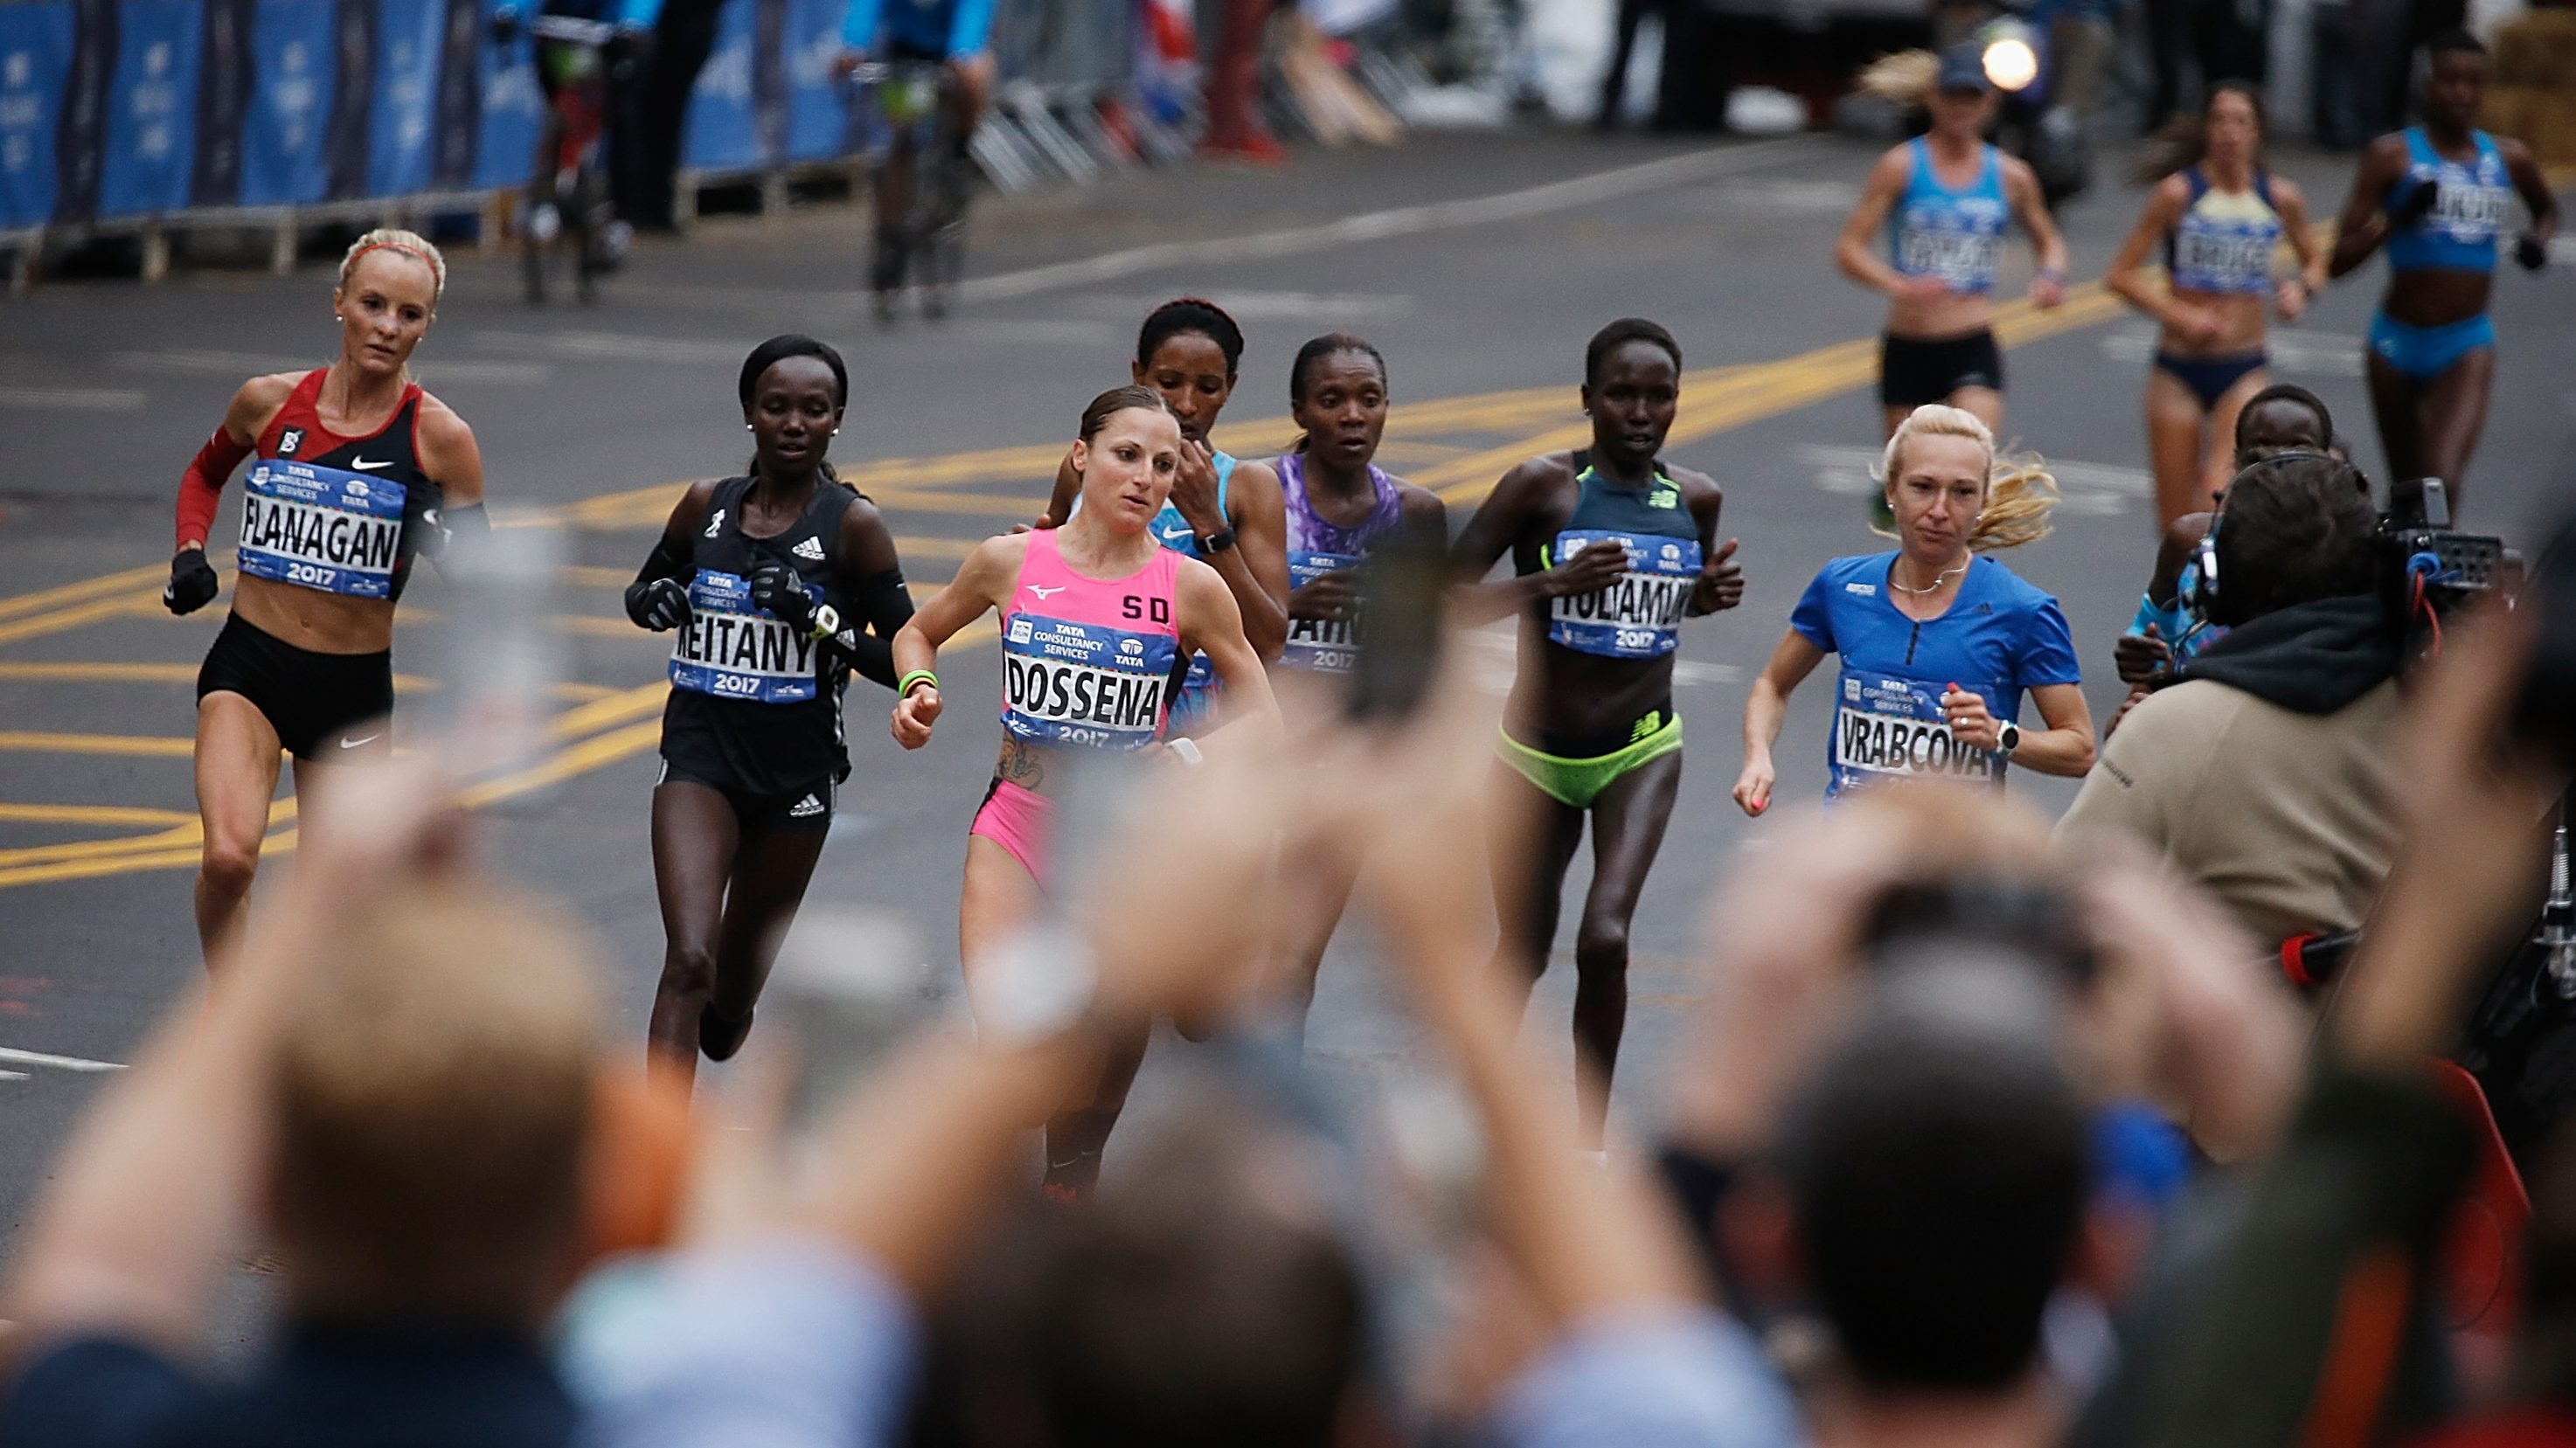 Women Runners In Boston Marathon Change Sexist Rules After Threat Of Not Receiving Their Prize